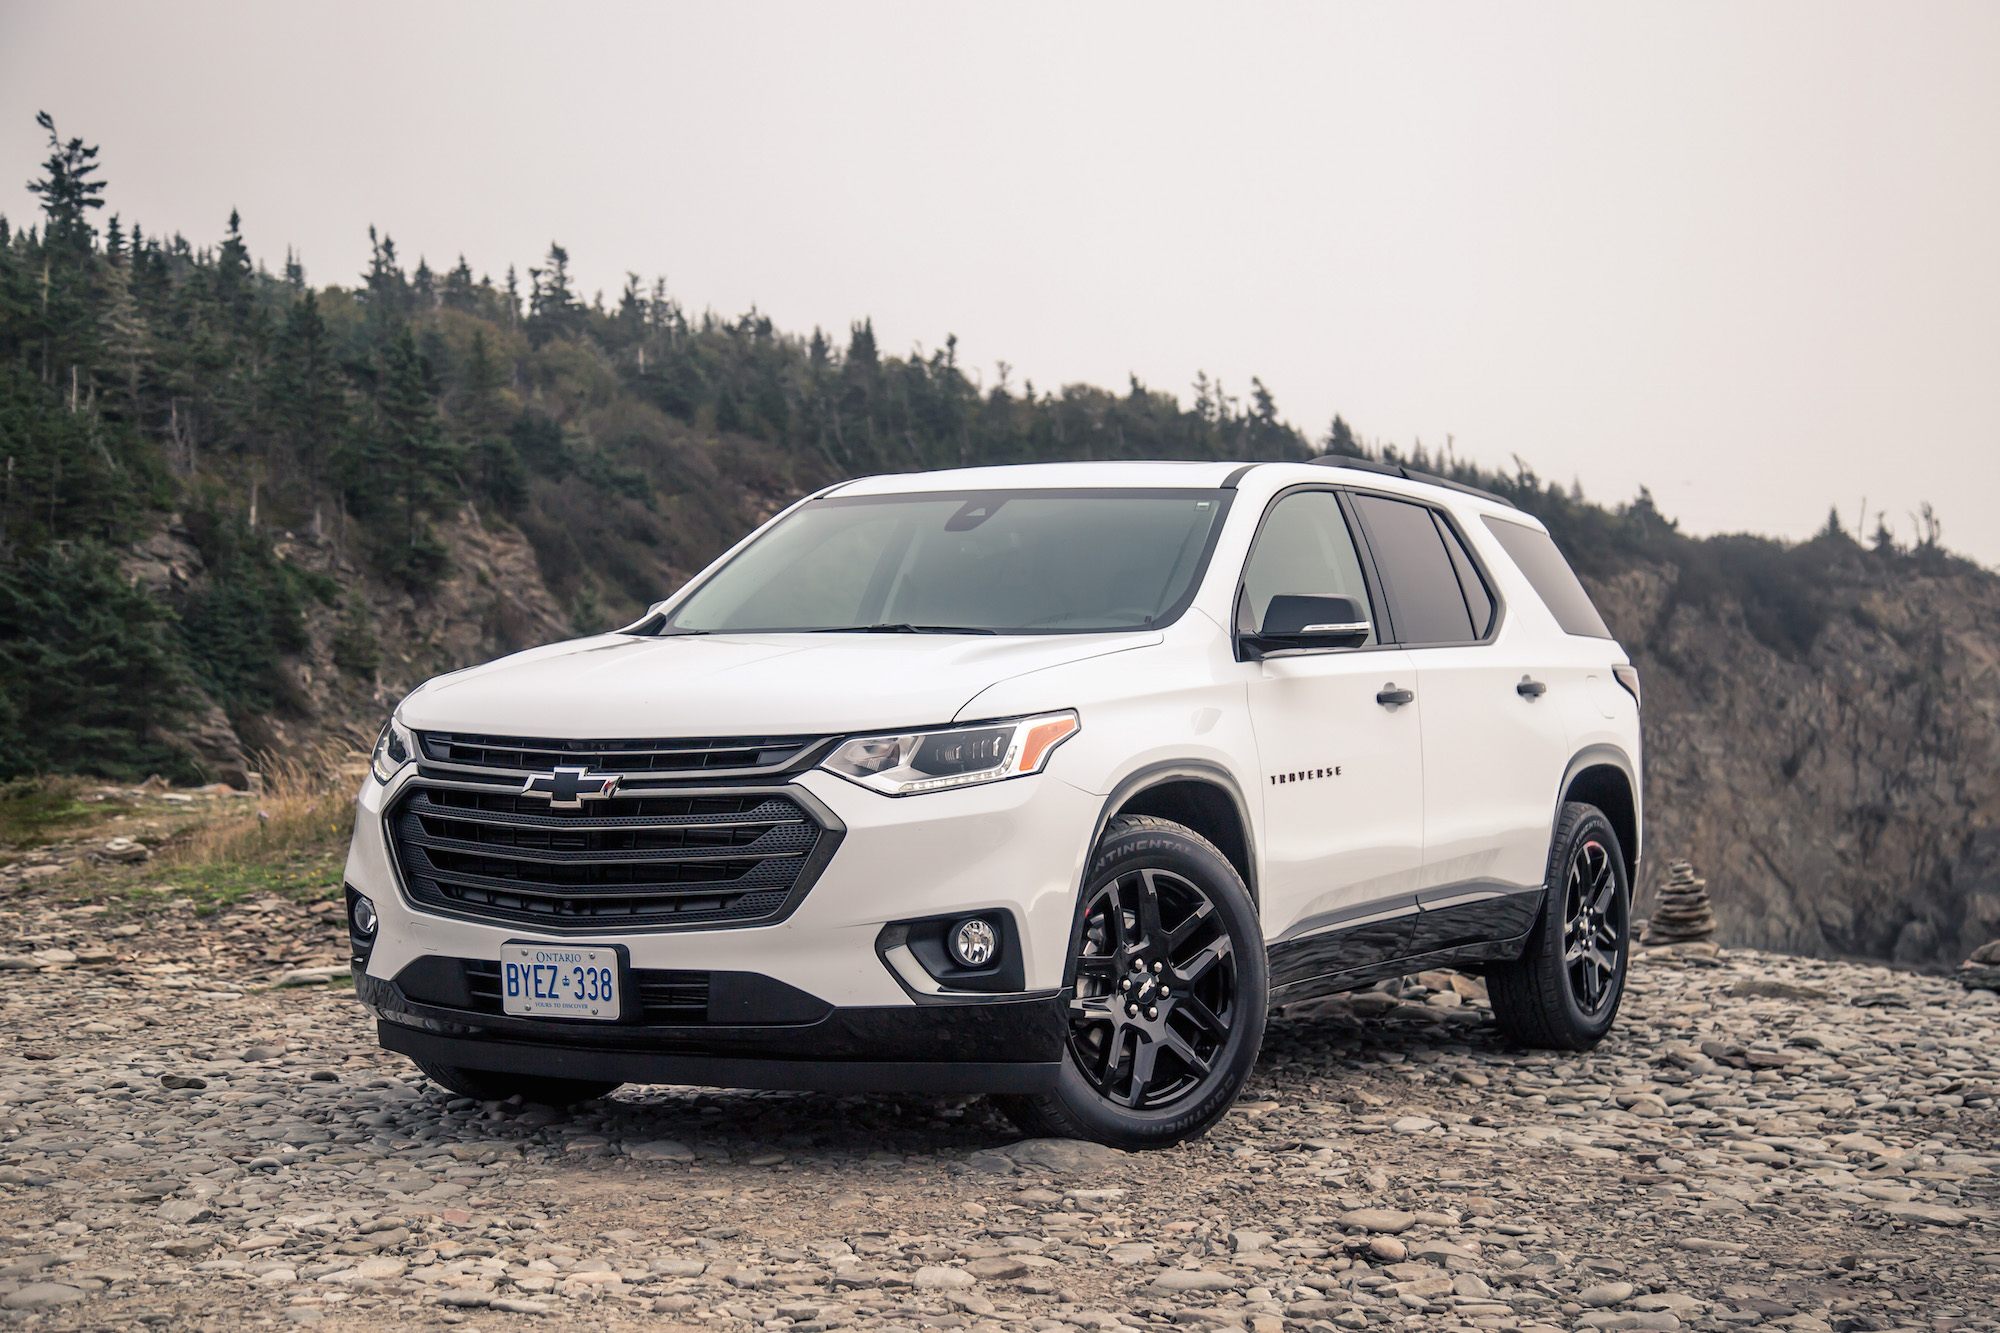 First Drive: 2018 Chevrolet Traverse | Canadian Auto Review